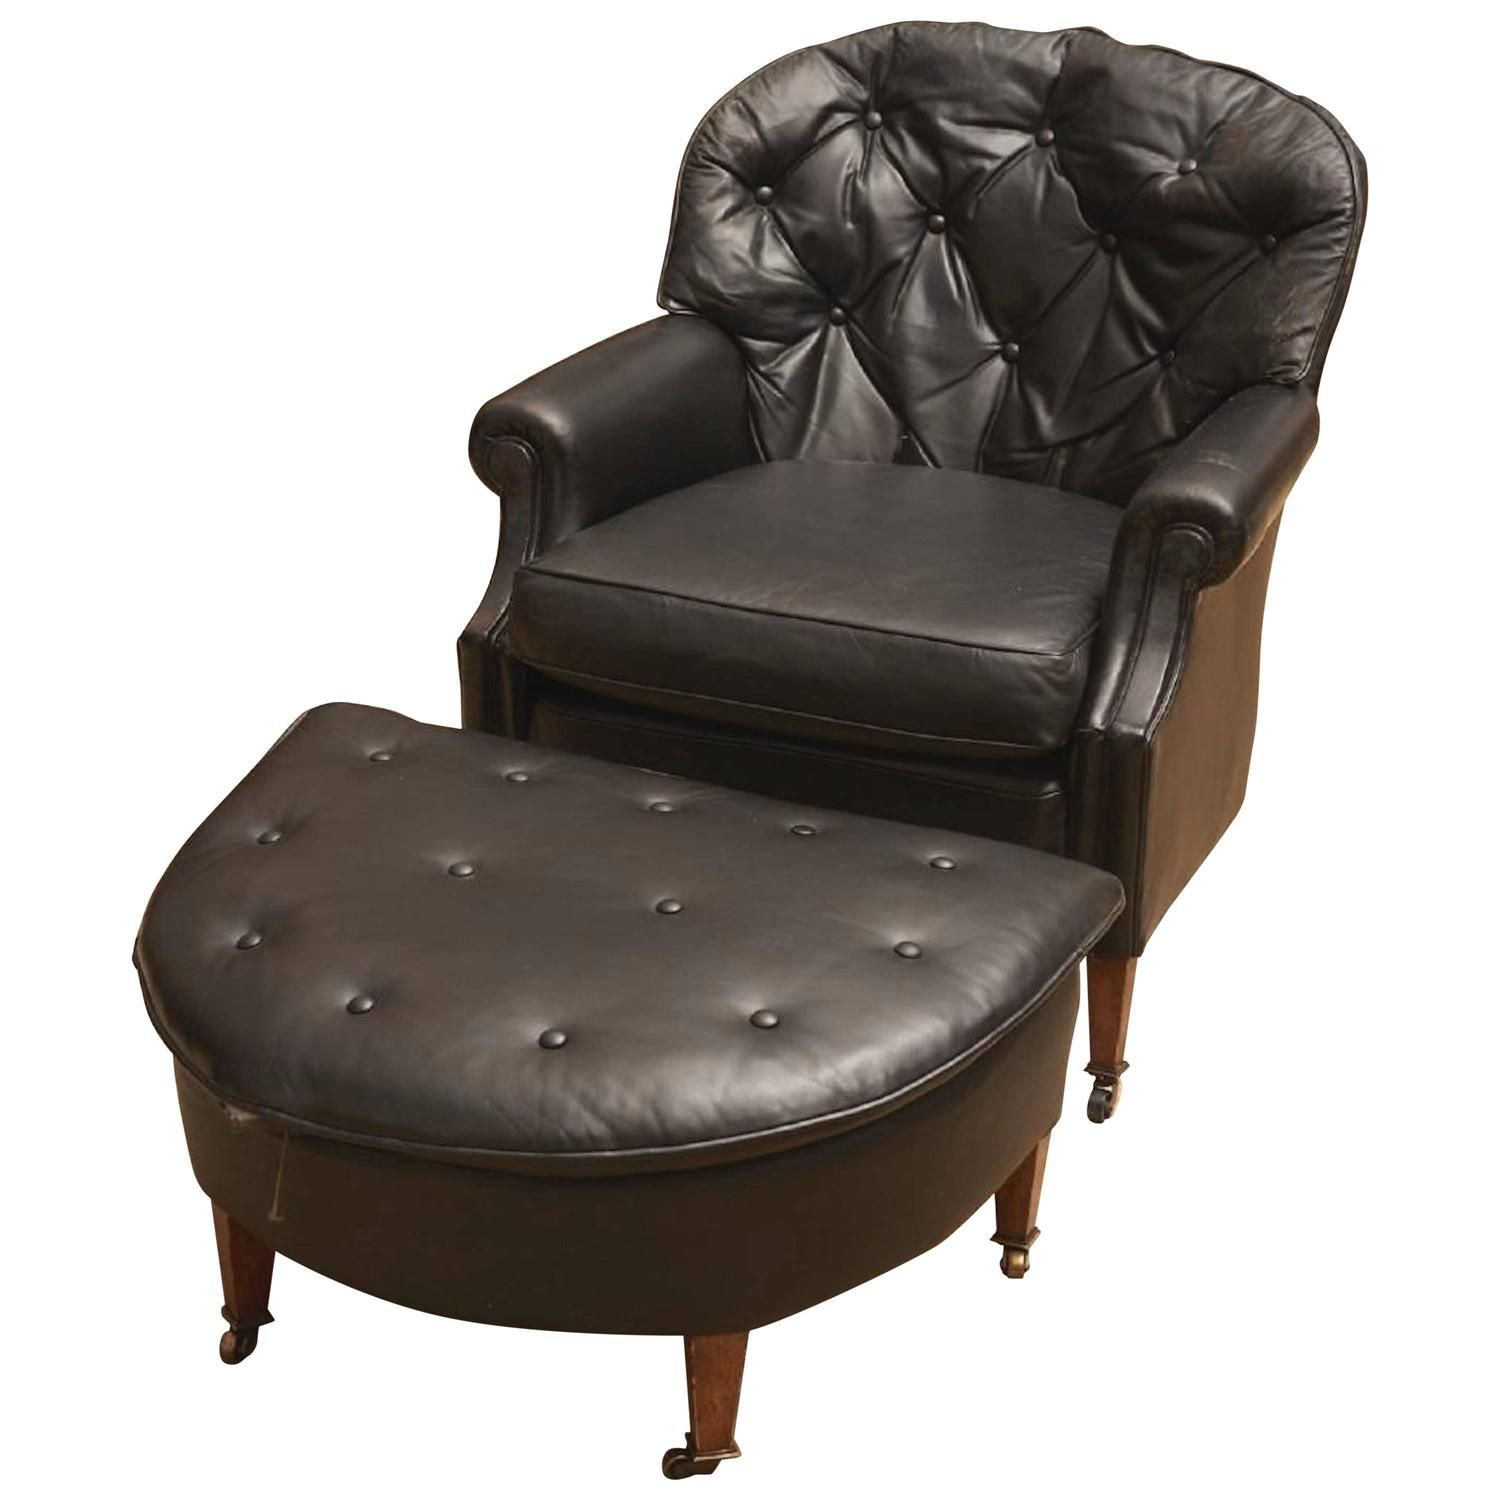 Black leather chesterfield club chair and ottoman with